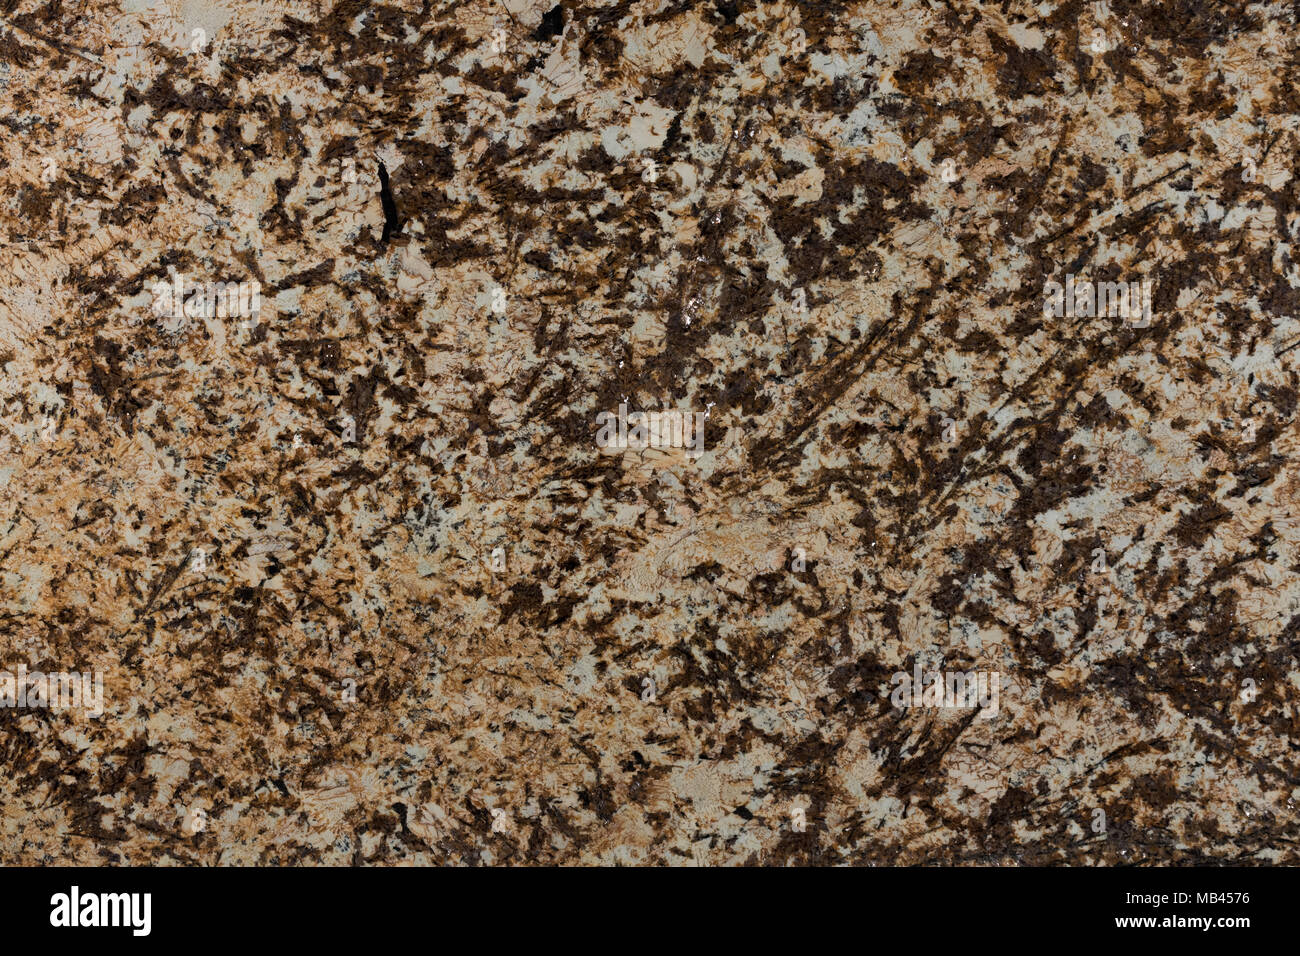 Seamless Brown Granite Texture As Background